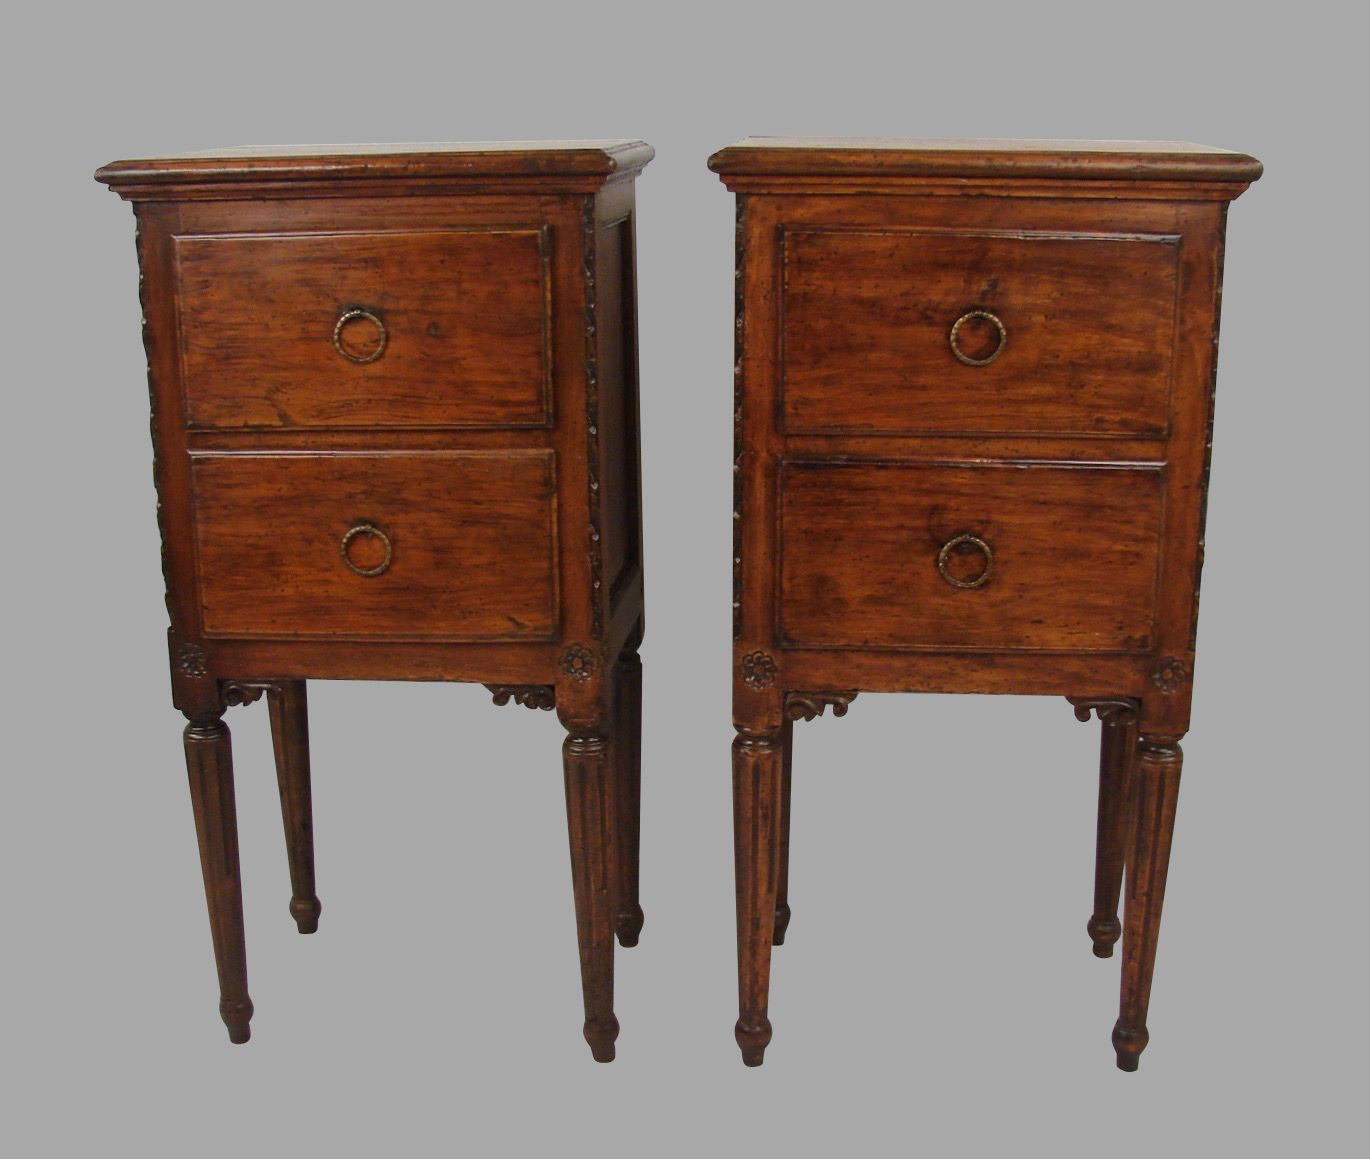 A Pair Of Italian Provincial Walnut Neoclassical Bedside Commodes